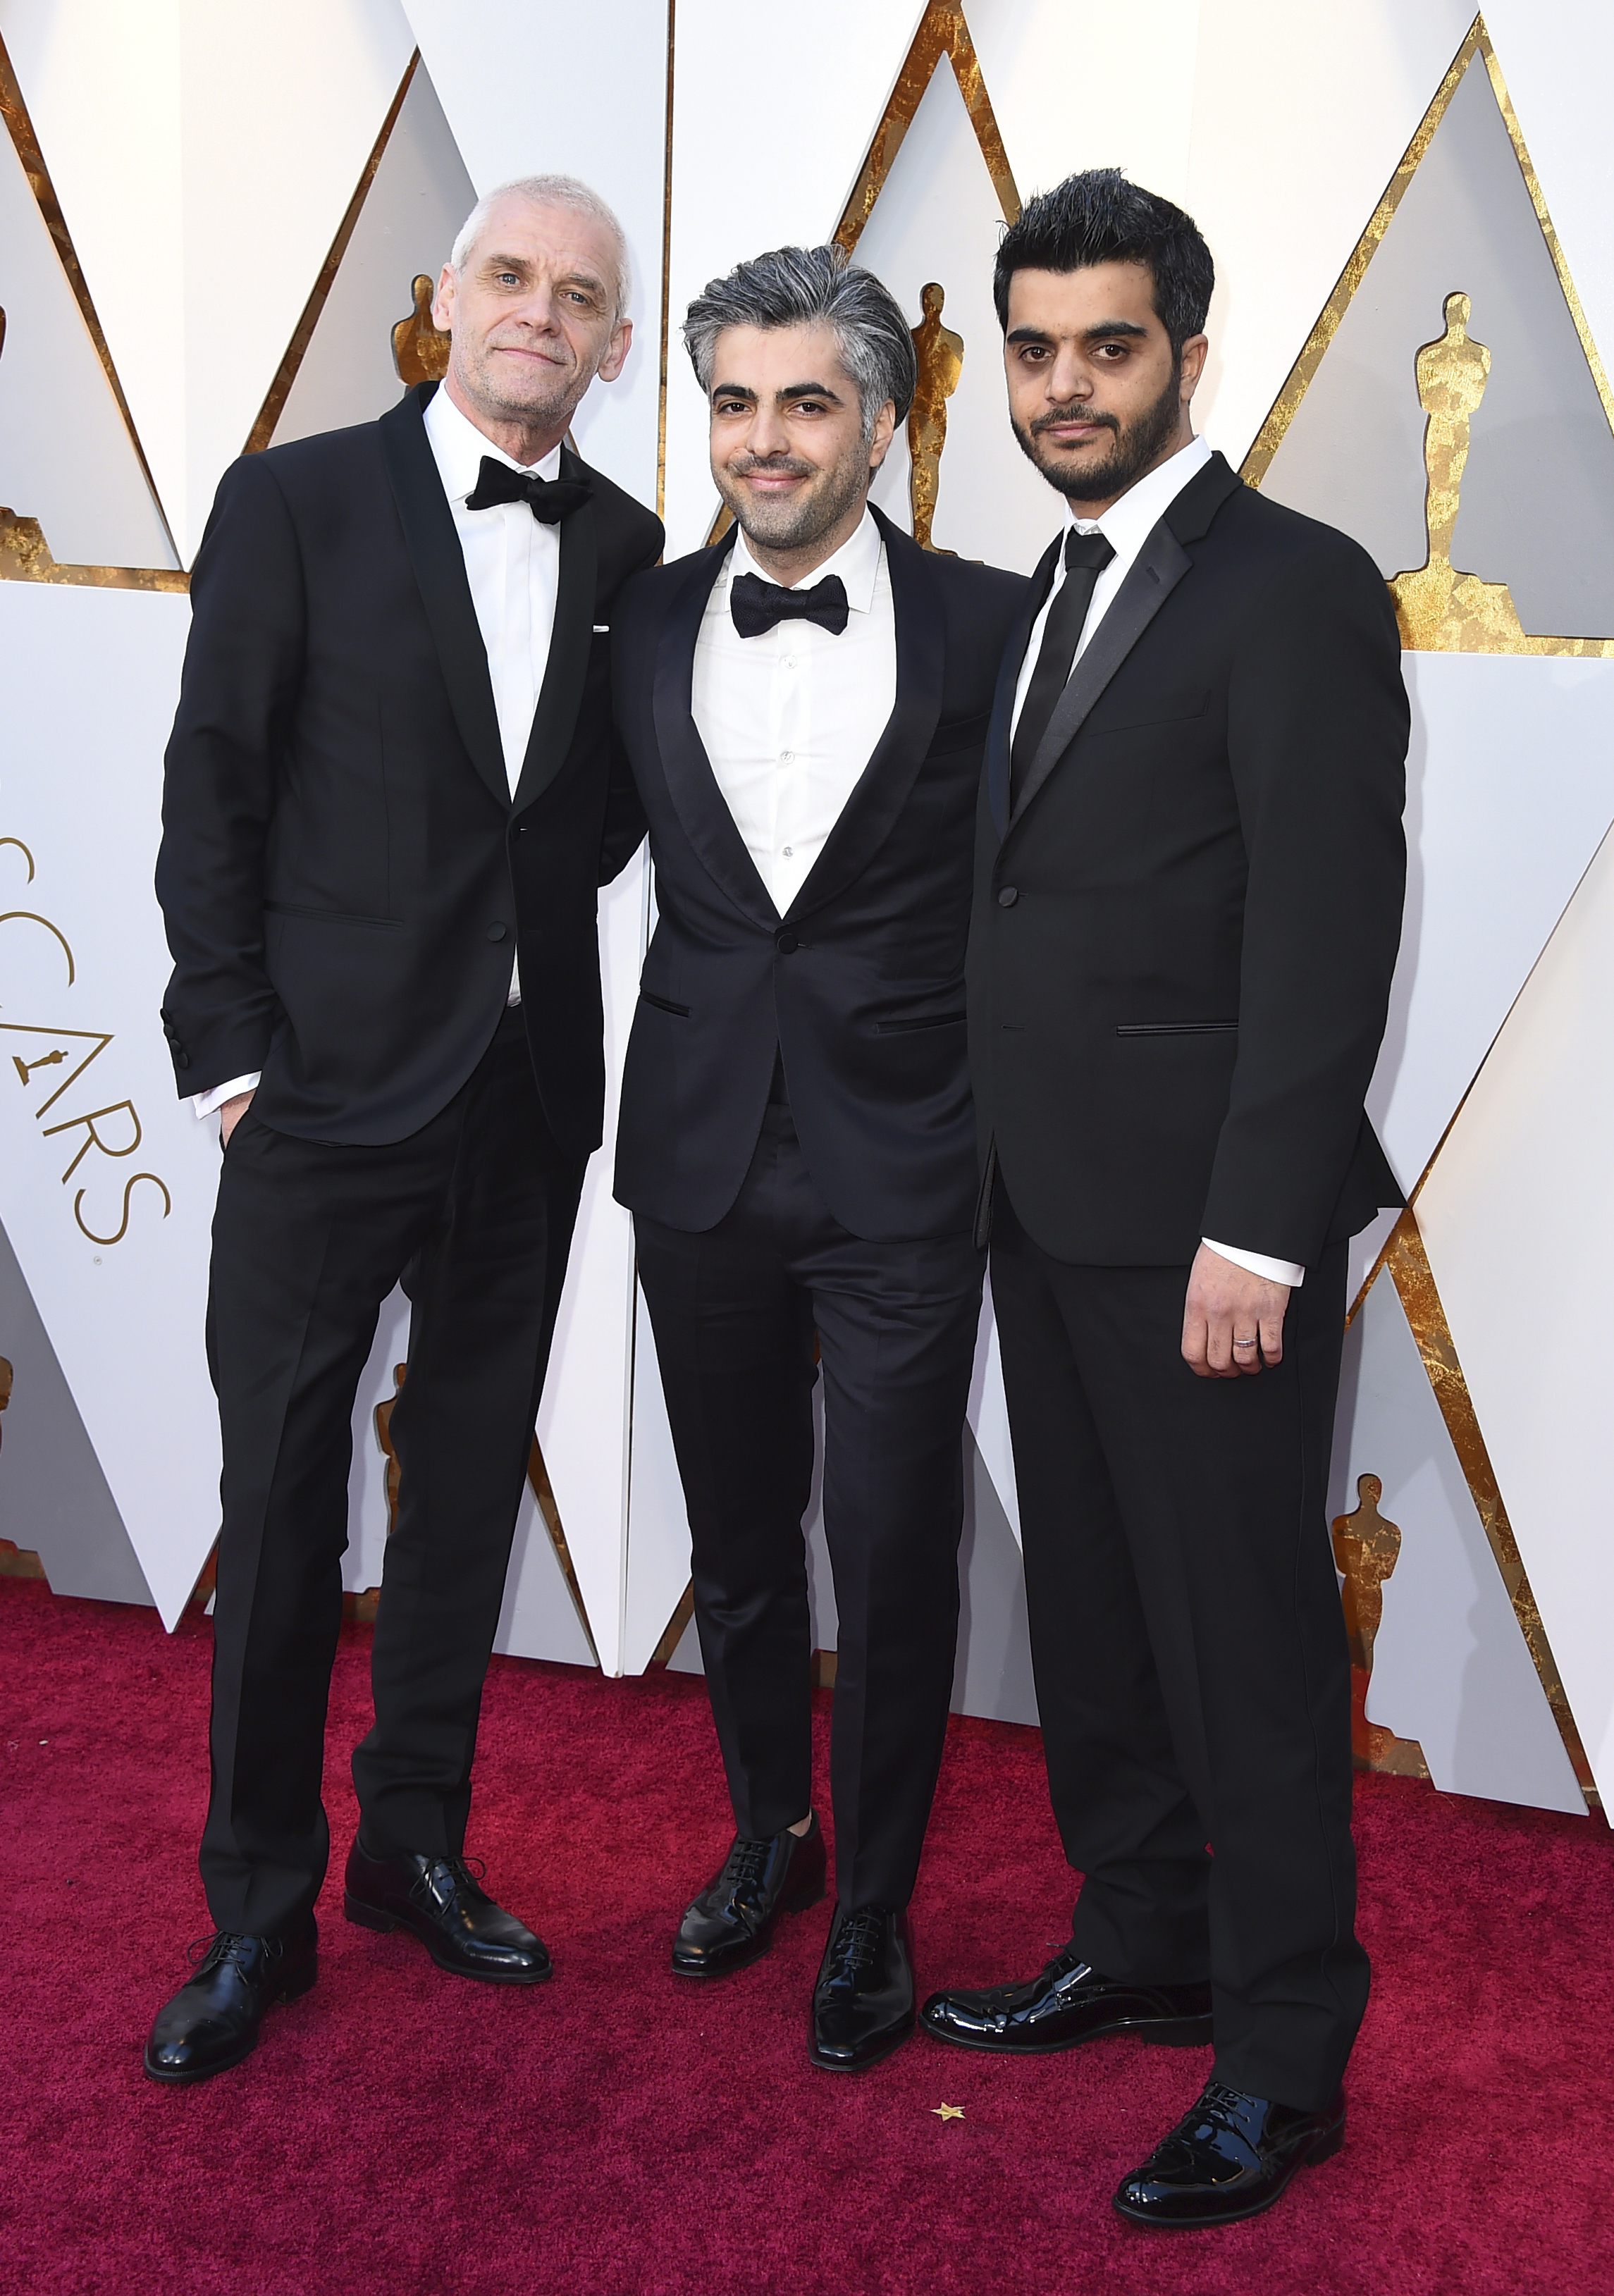 "<div class=""meta image-caption""><div class=""origin-logo origin-image none""><span>none</span></div><span class=""caption-text"">Soren Steen Jespersen, from left, Feras Fayyad, and Kareem Abeed, the team behind Best Documentary Feature nominee ''Last Men in Aleppo,'' arrive at the Oscars. (Jordan Strauss/Invision/AP)</span></div>"